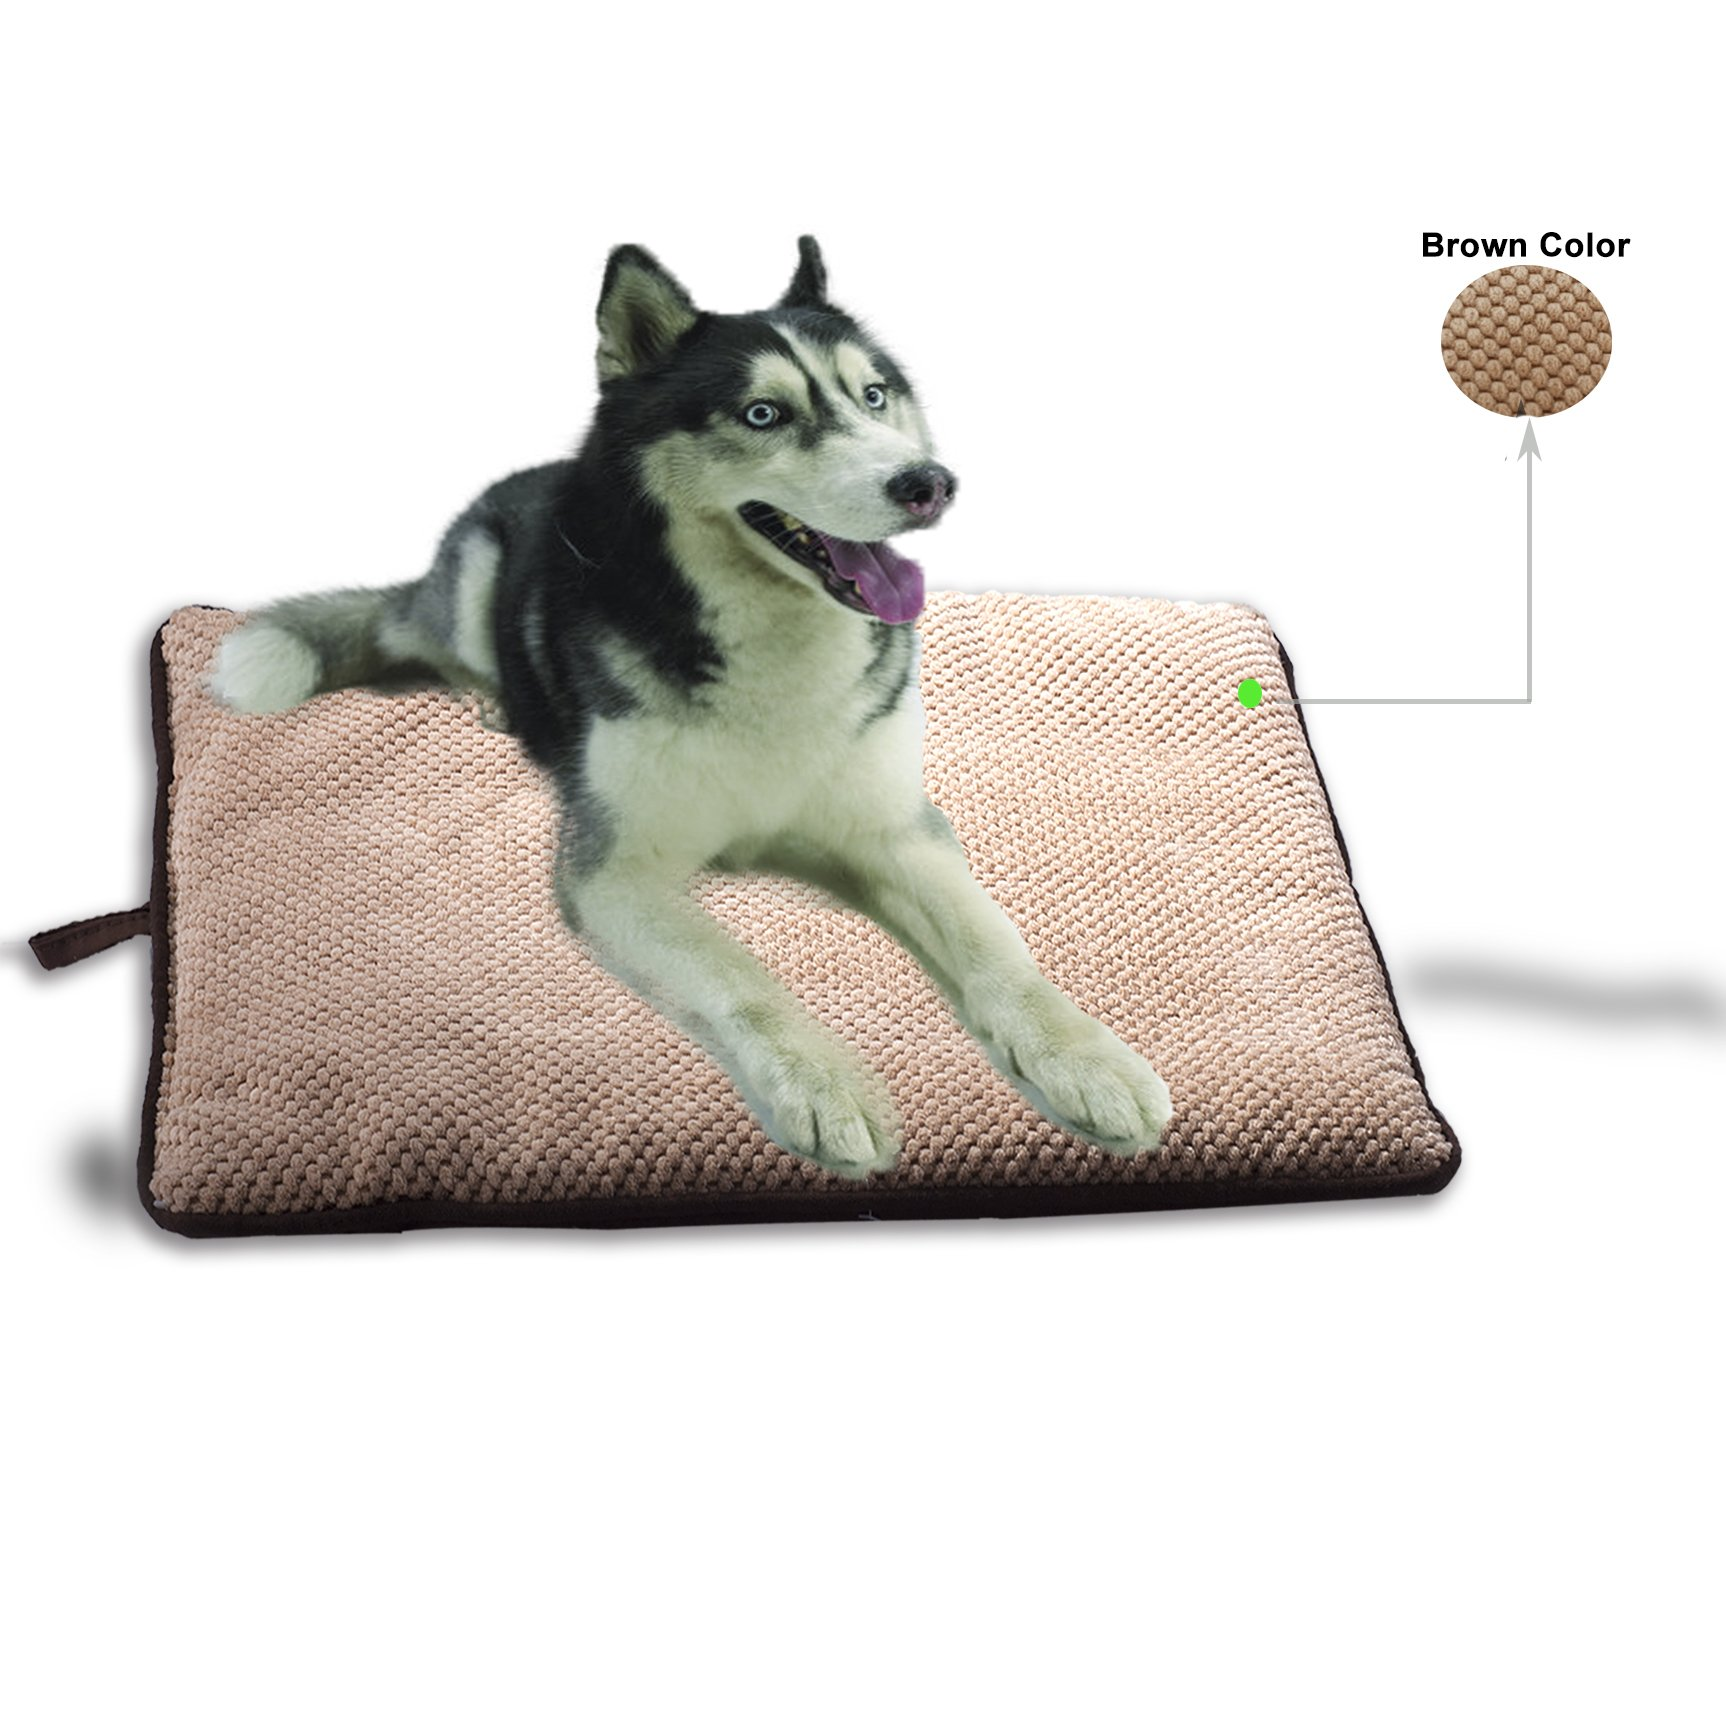 PAWISE Dog Bed Cat Bed Dog Mat Teflon Cushion Waterproof for Crate Outdoor Car Mat Machine Wash (Large-New) by PAWISE (Image #1)